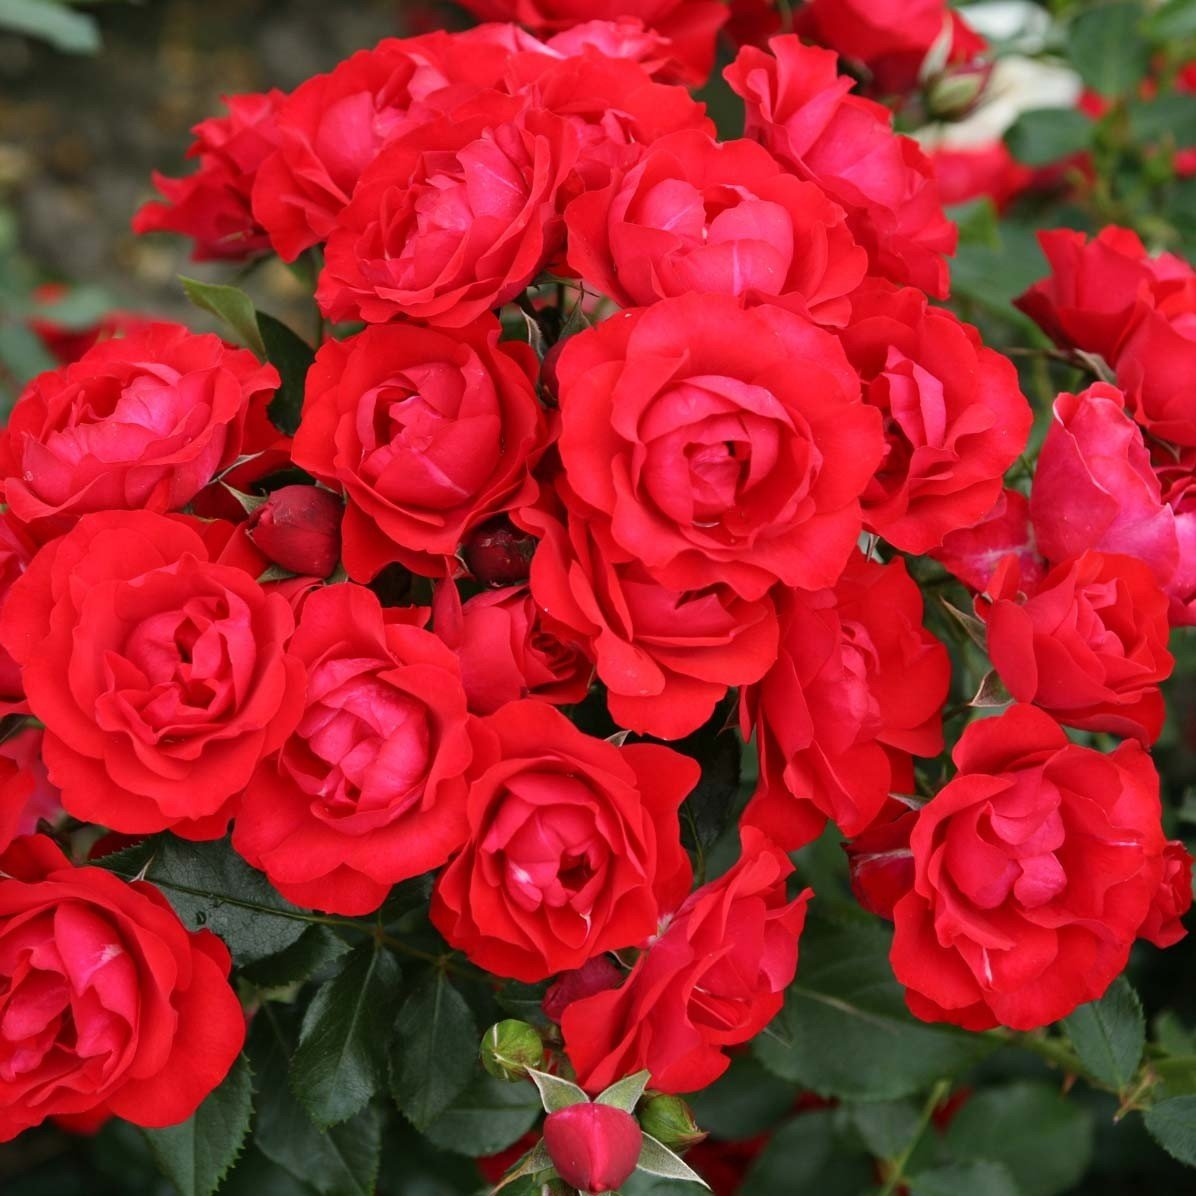 Rosier Rigo Black Forest Rose